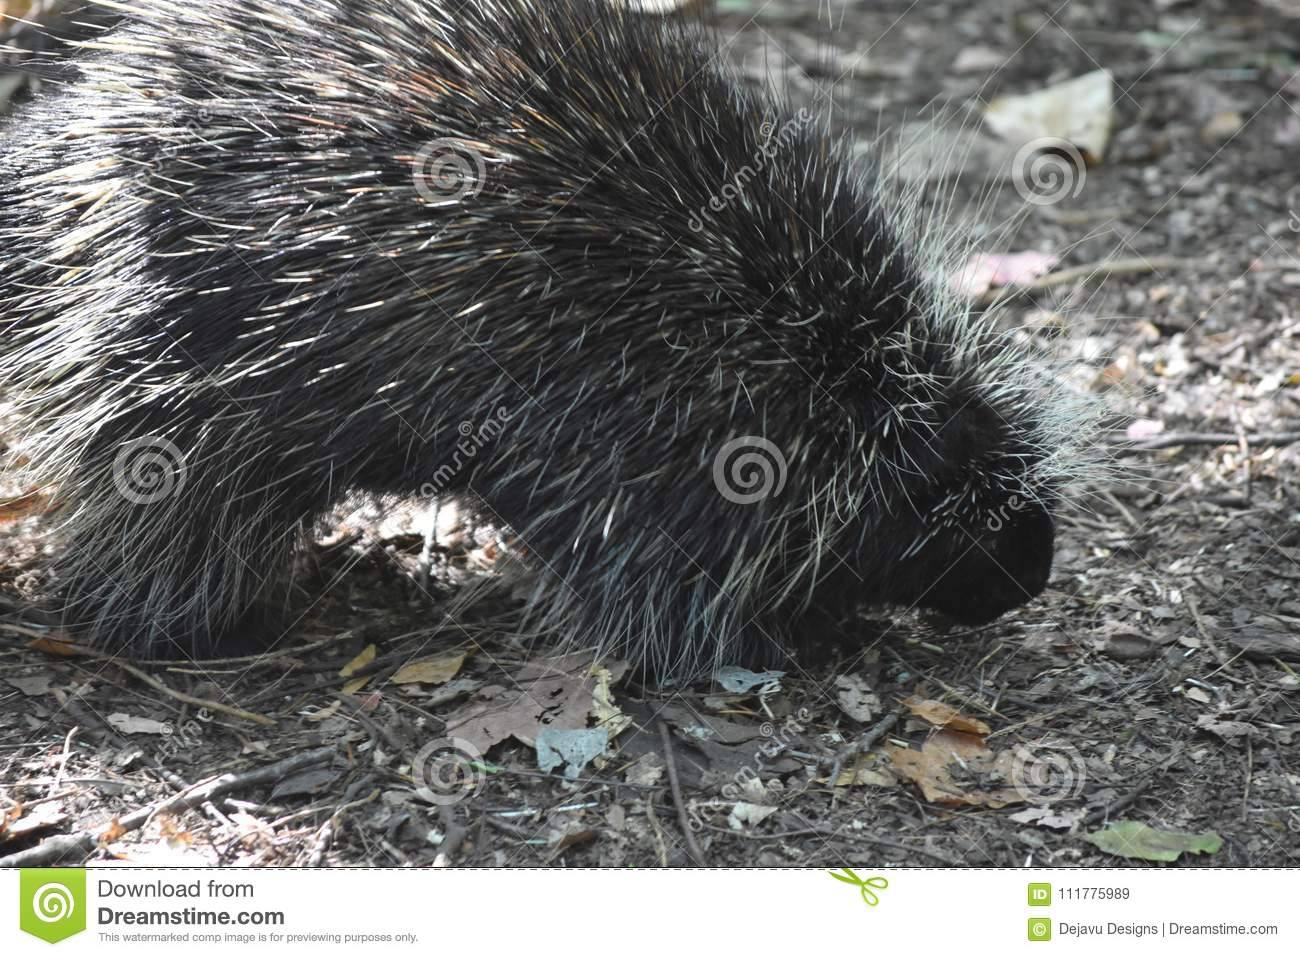 Large black and white porcupine walking in the woods